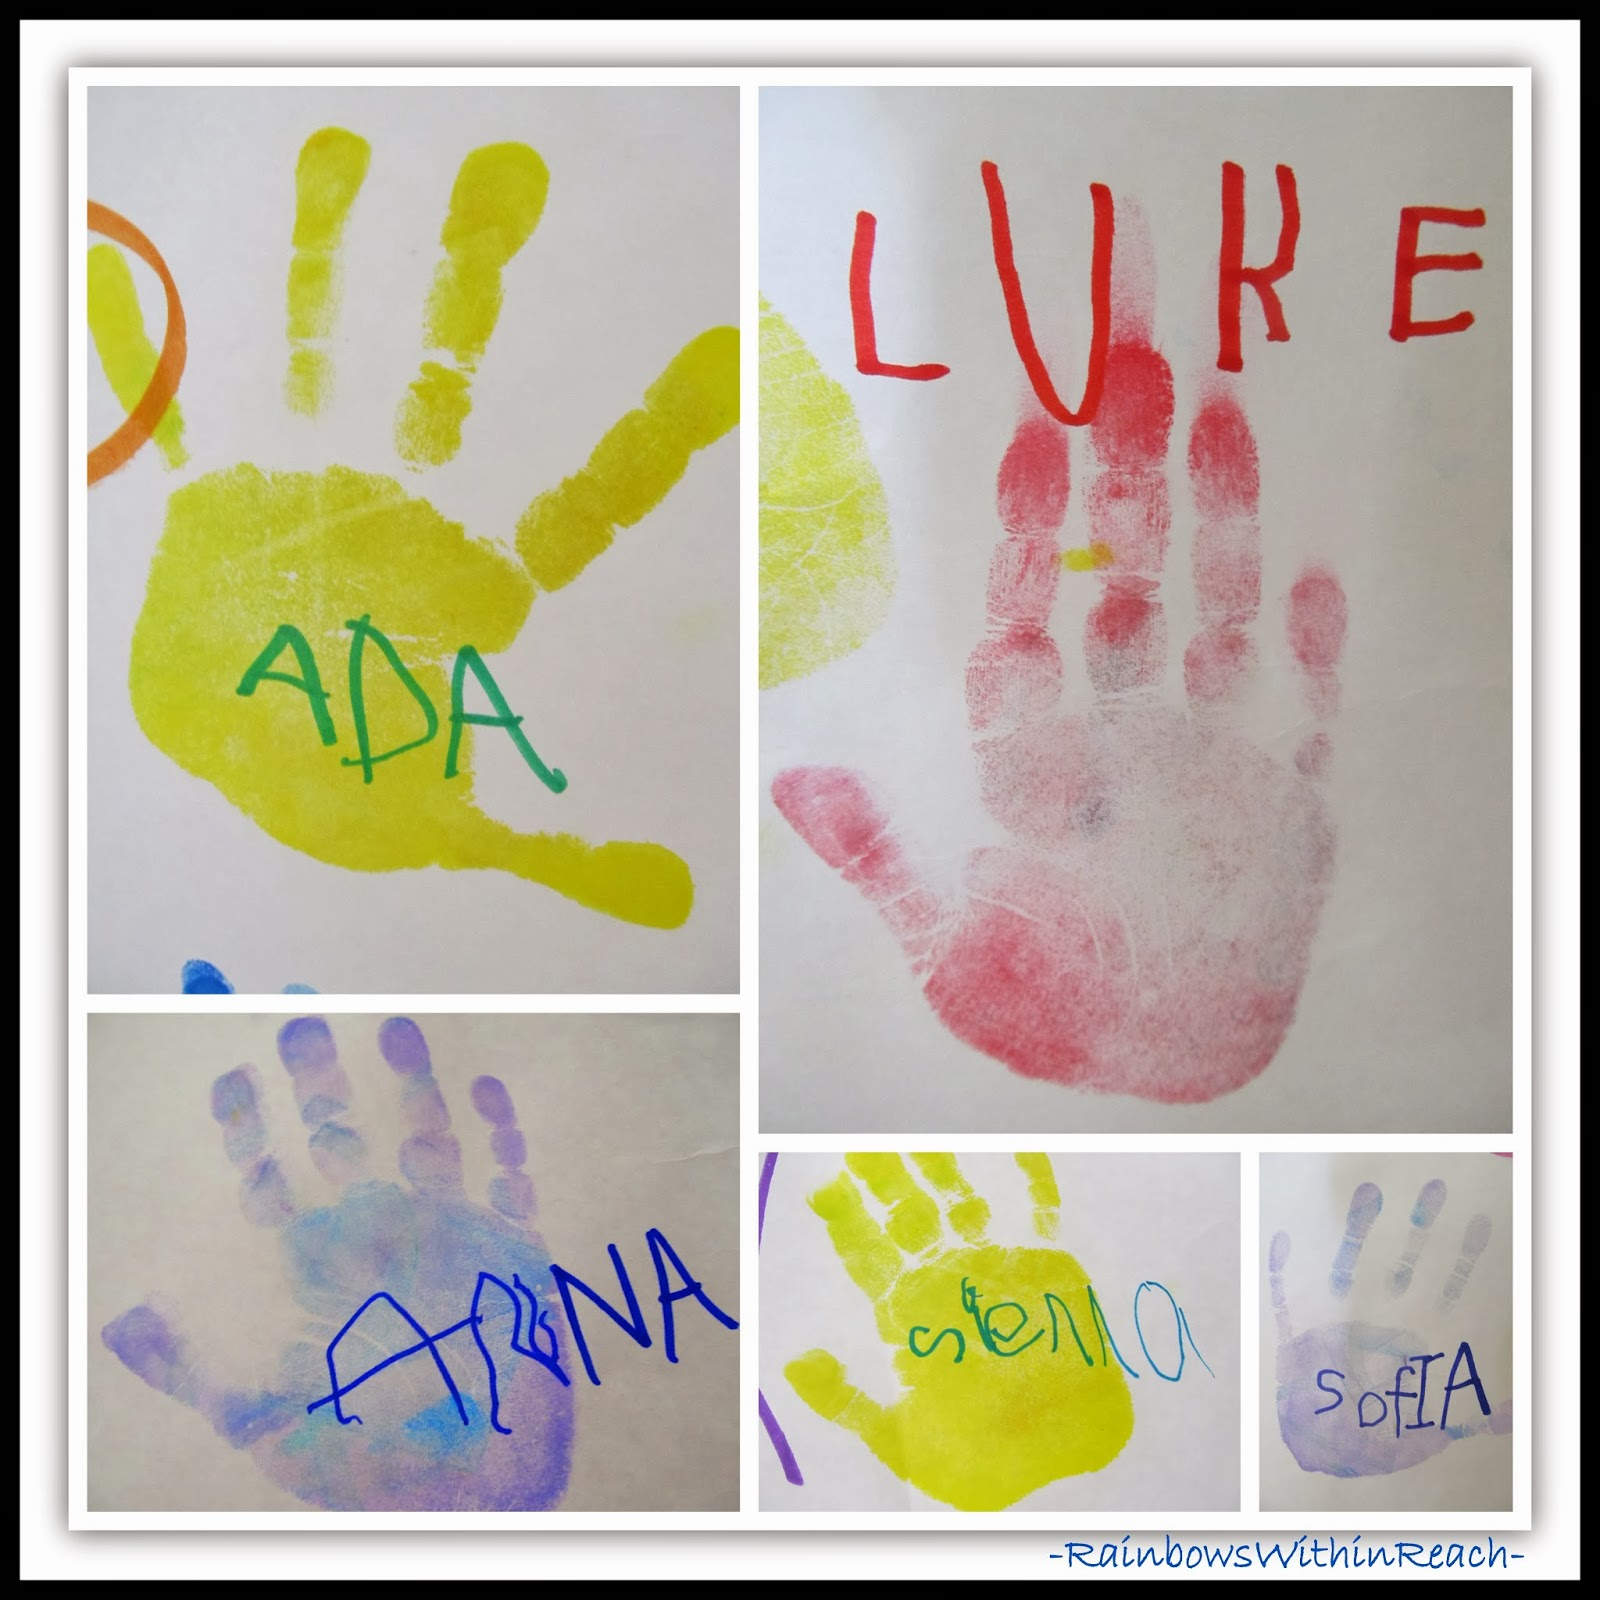 Signatures as Part of Children's Art Response